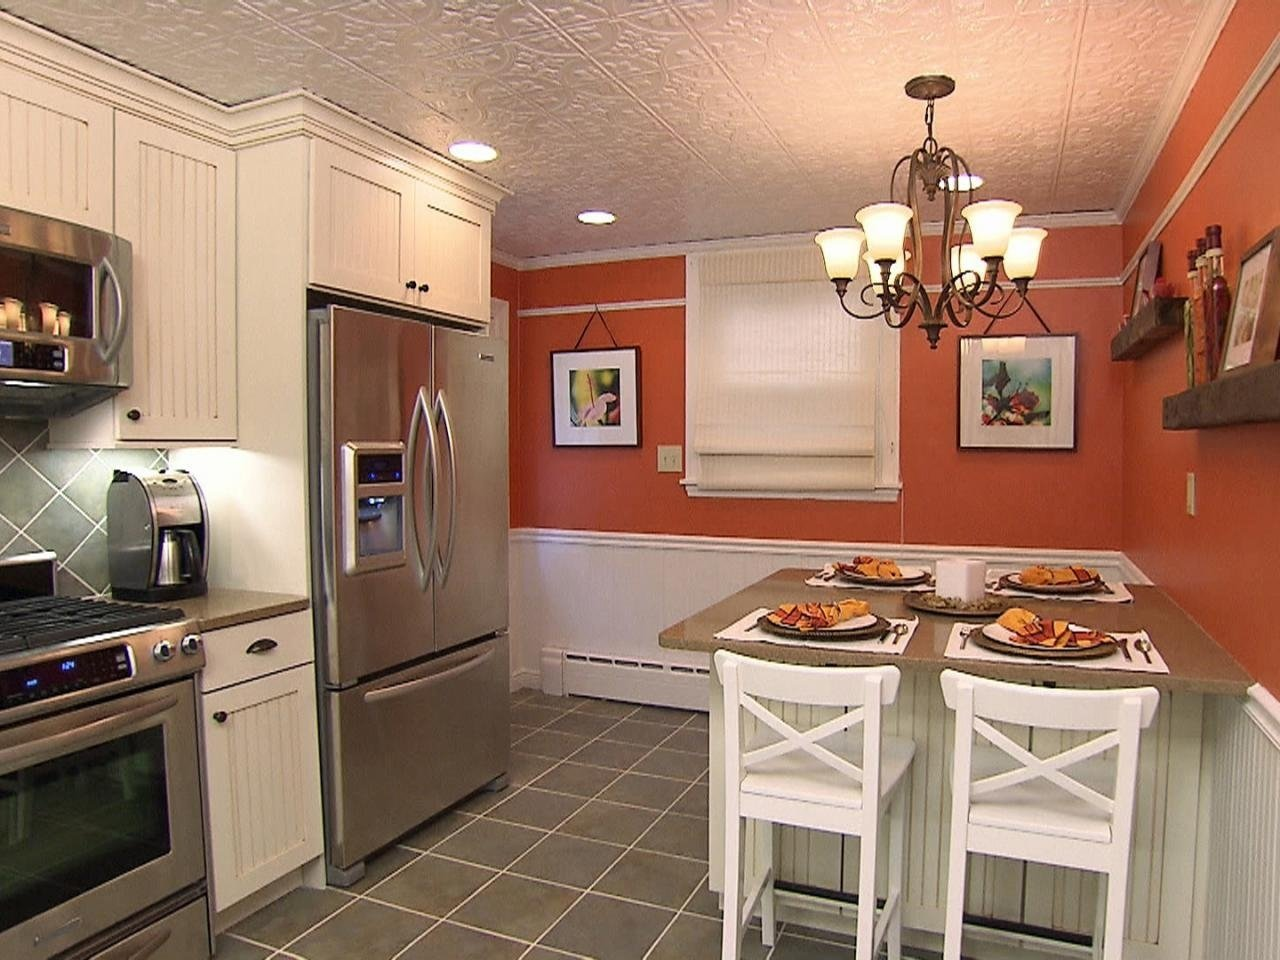 10 Most Recommended Small Eat In Kitchen Ideas small eat in kitchen ideas tatertalltails designs amazing small